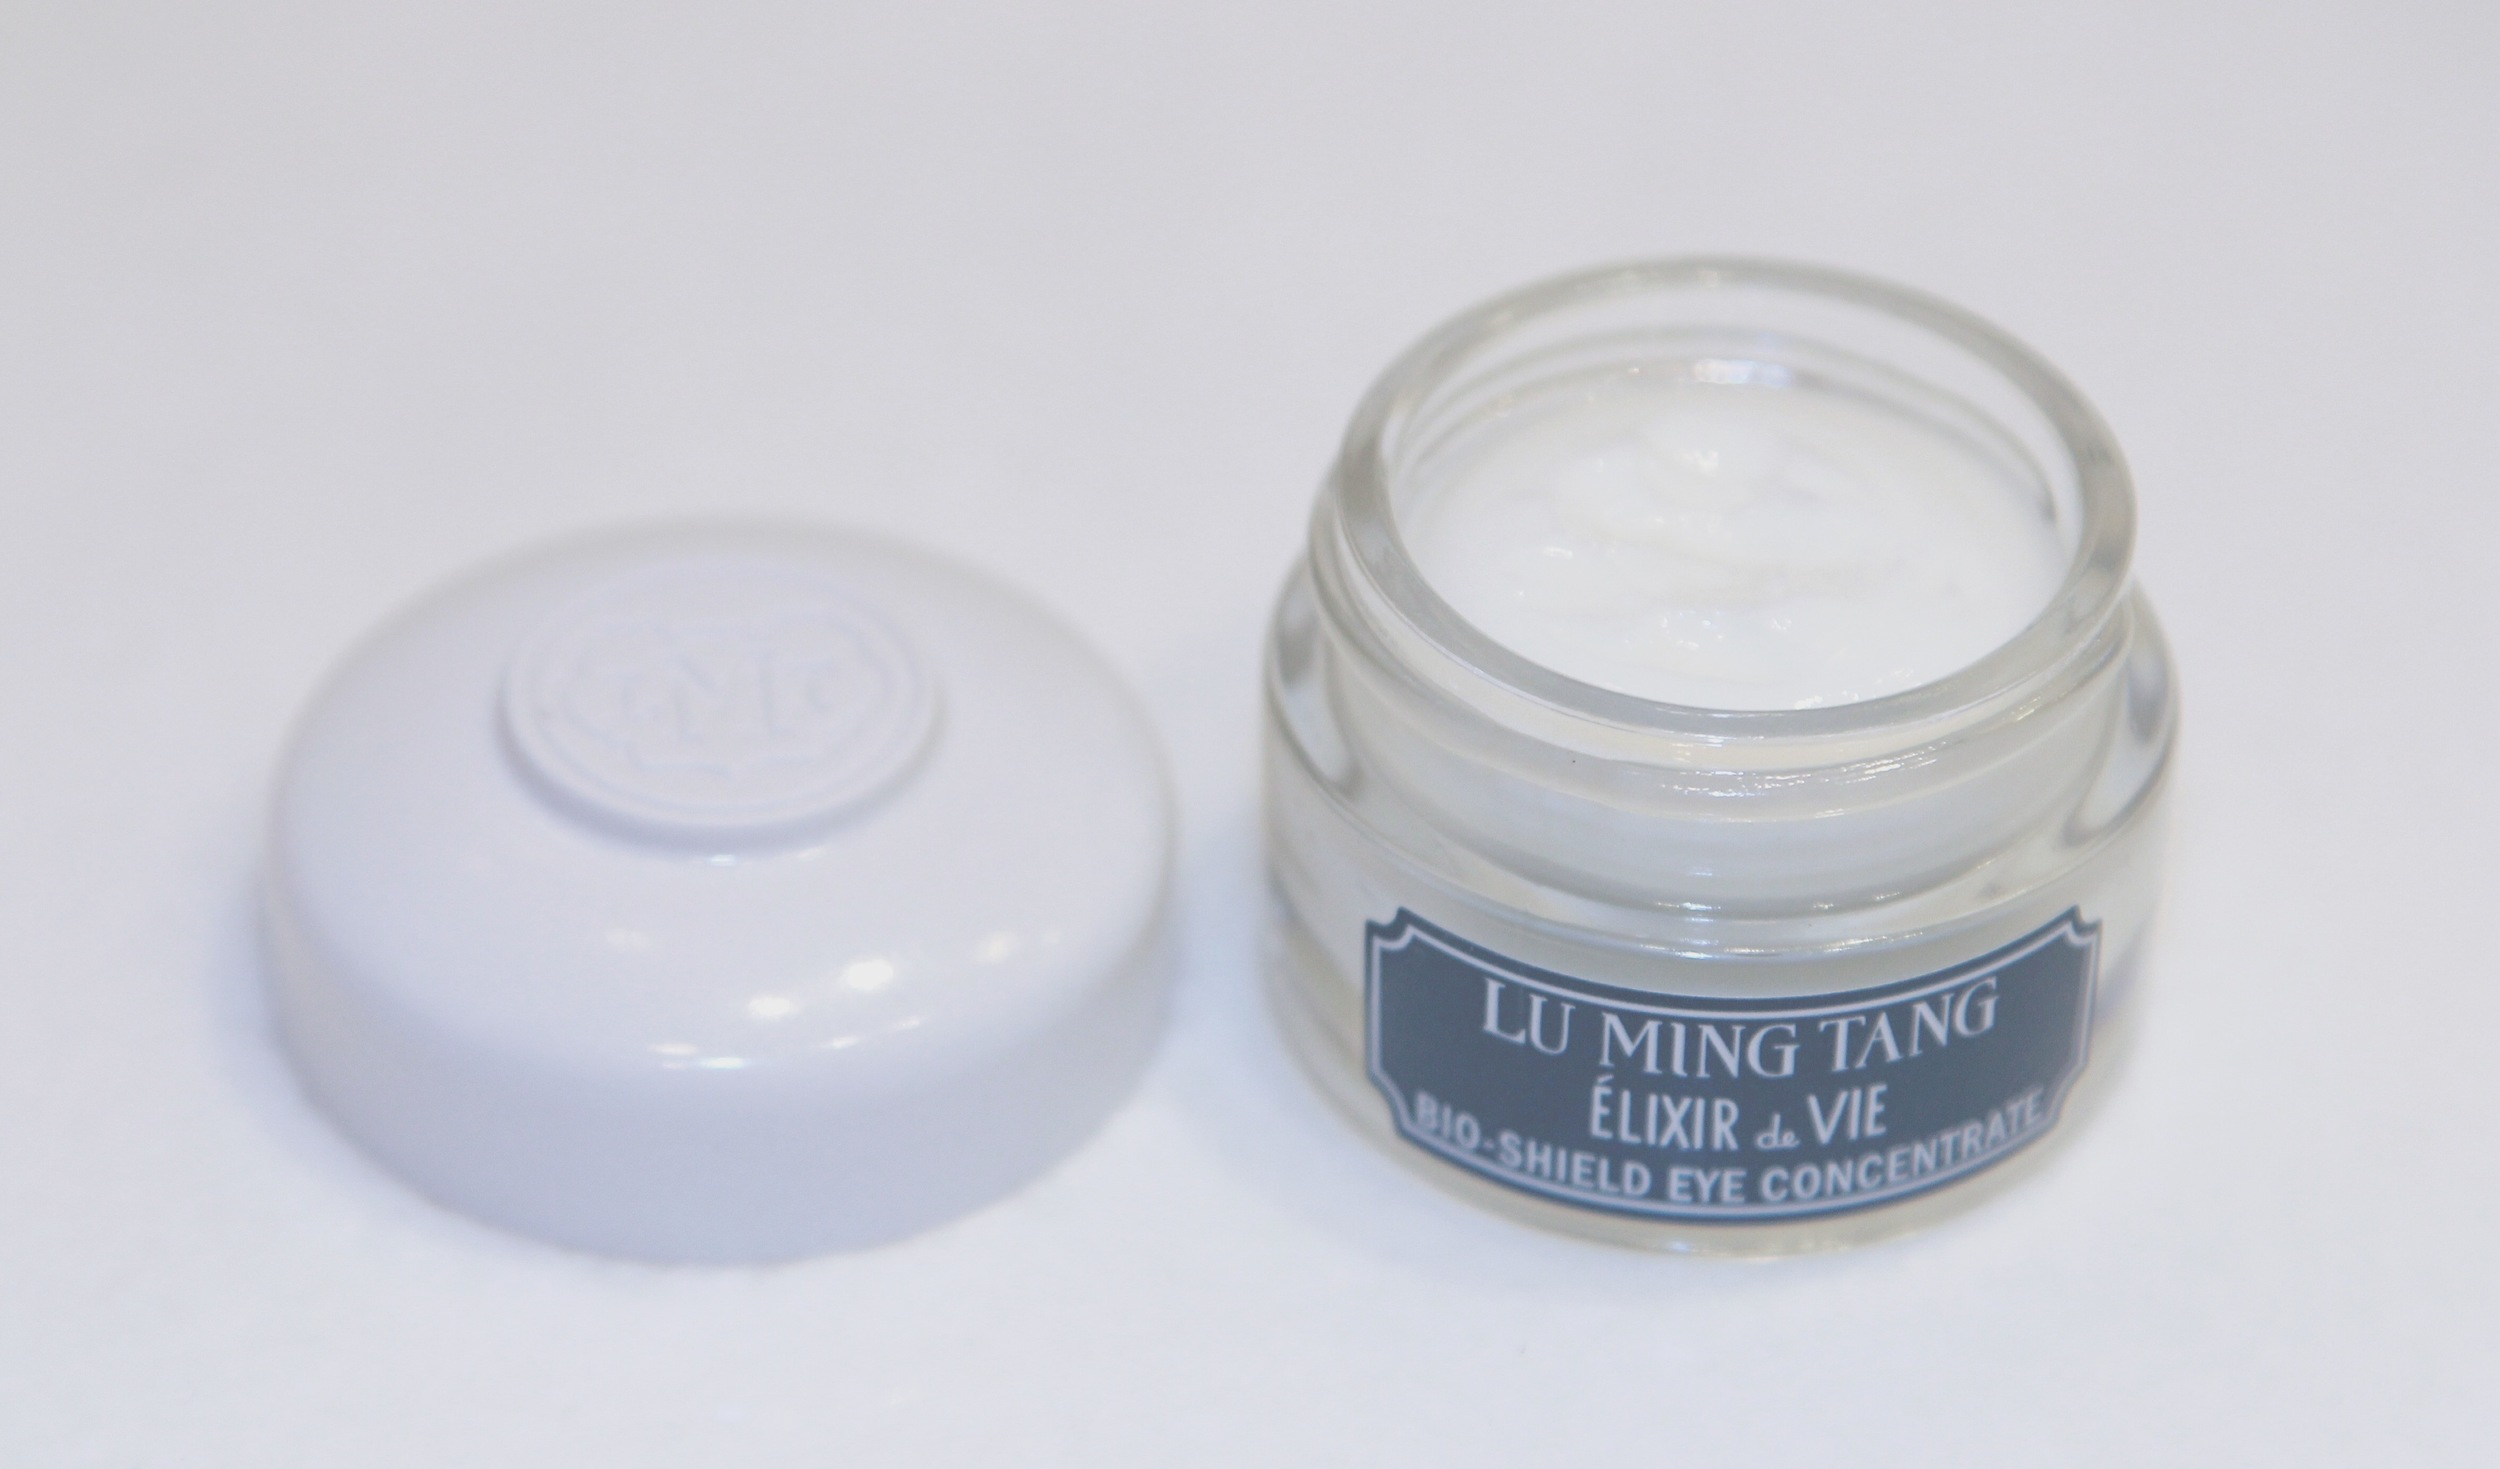 Slightly thicker in consistency than I am used to, but some great results for me with this cream!